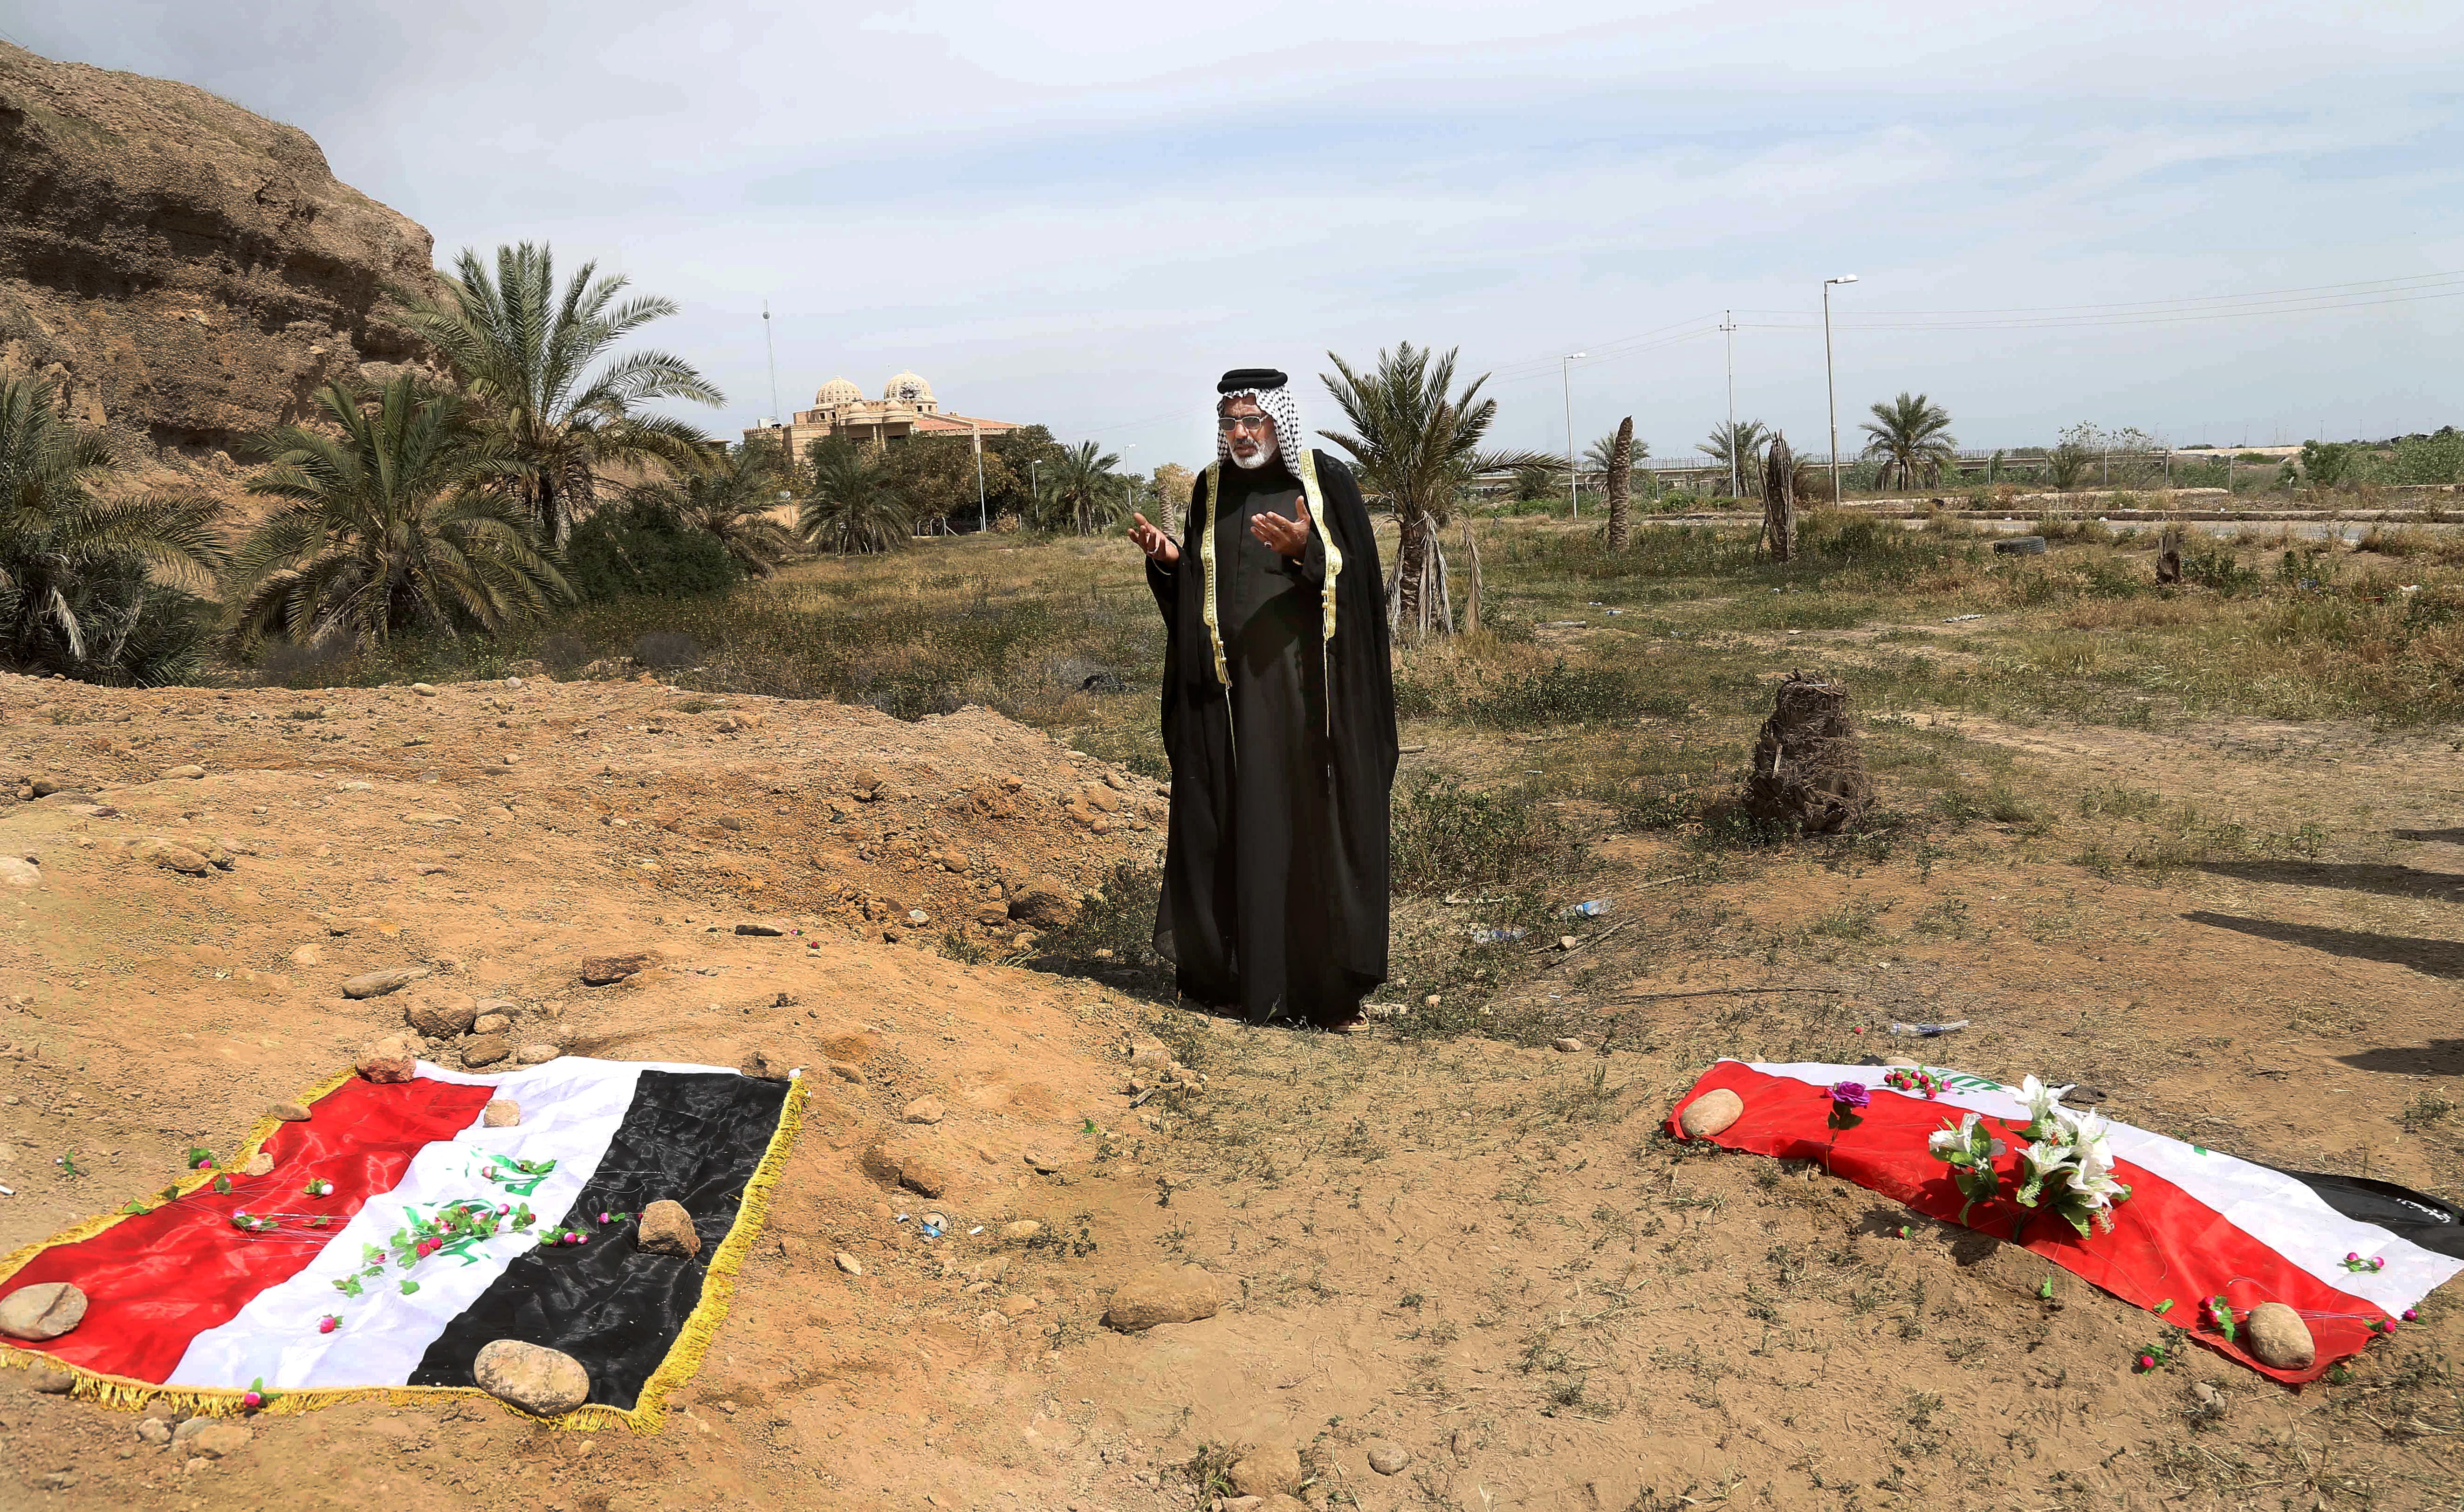 An Iraqi man prays in 2015 for his slain relative, at the site of a mass grave, believed to contain the bodies of Iraqi soldiers killed by Islamic State group militants when they overran Camp Speicher military base, in Tikrit, Iraq. Khalid Mohammed/AP